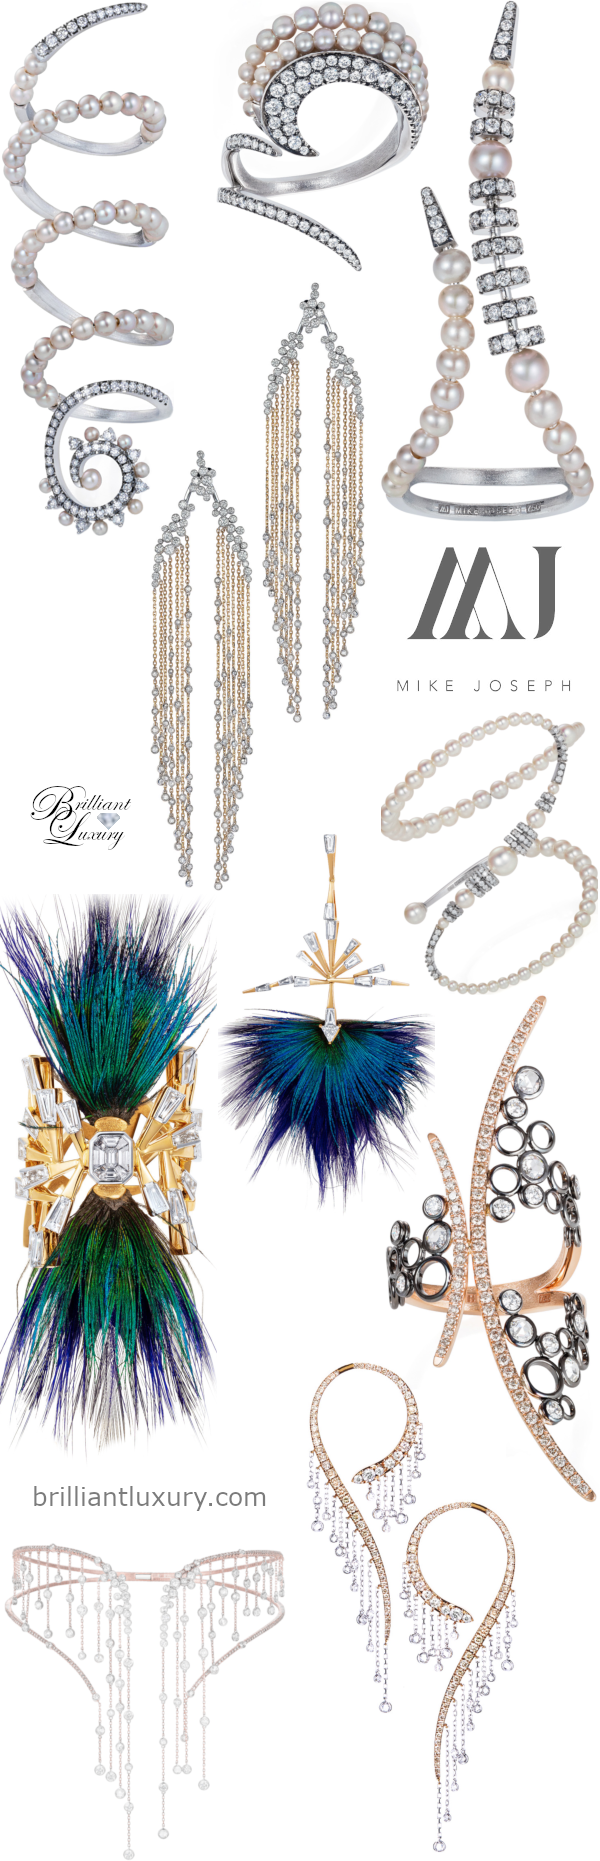 Mike Joseph Jewellery Collection